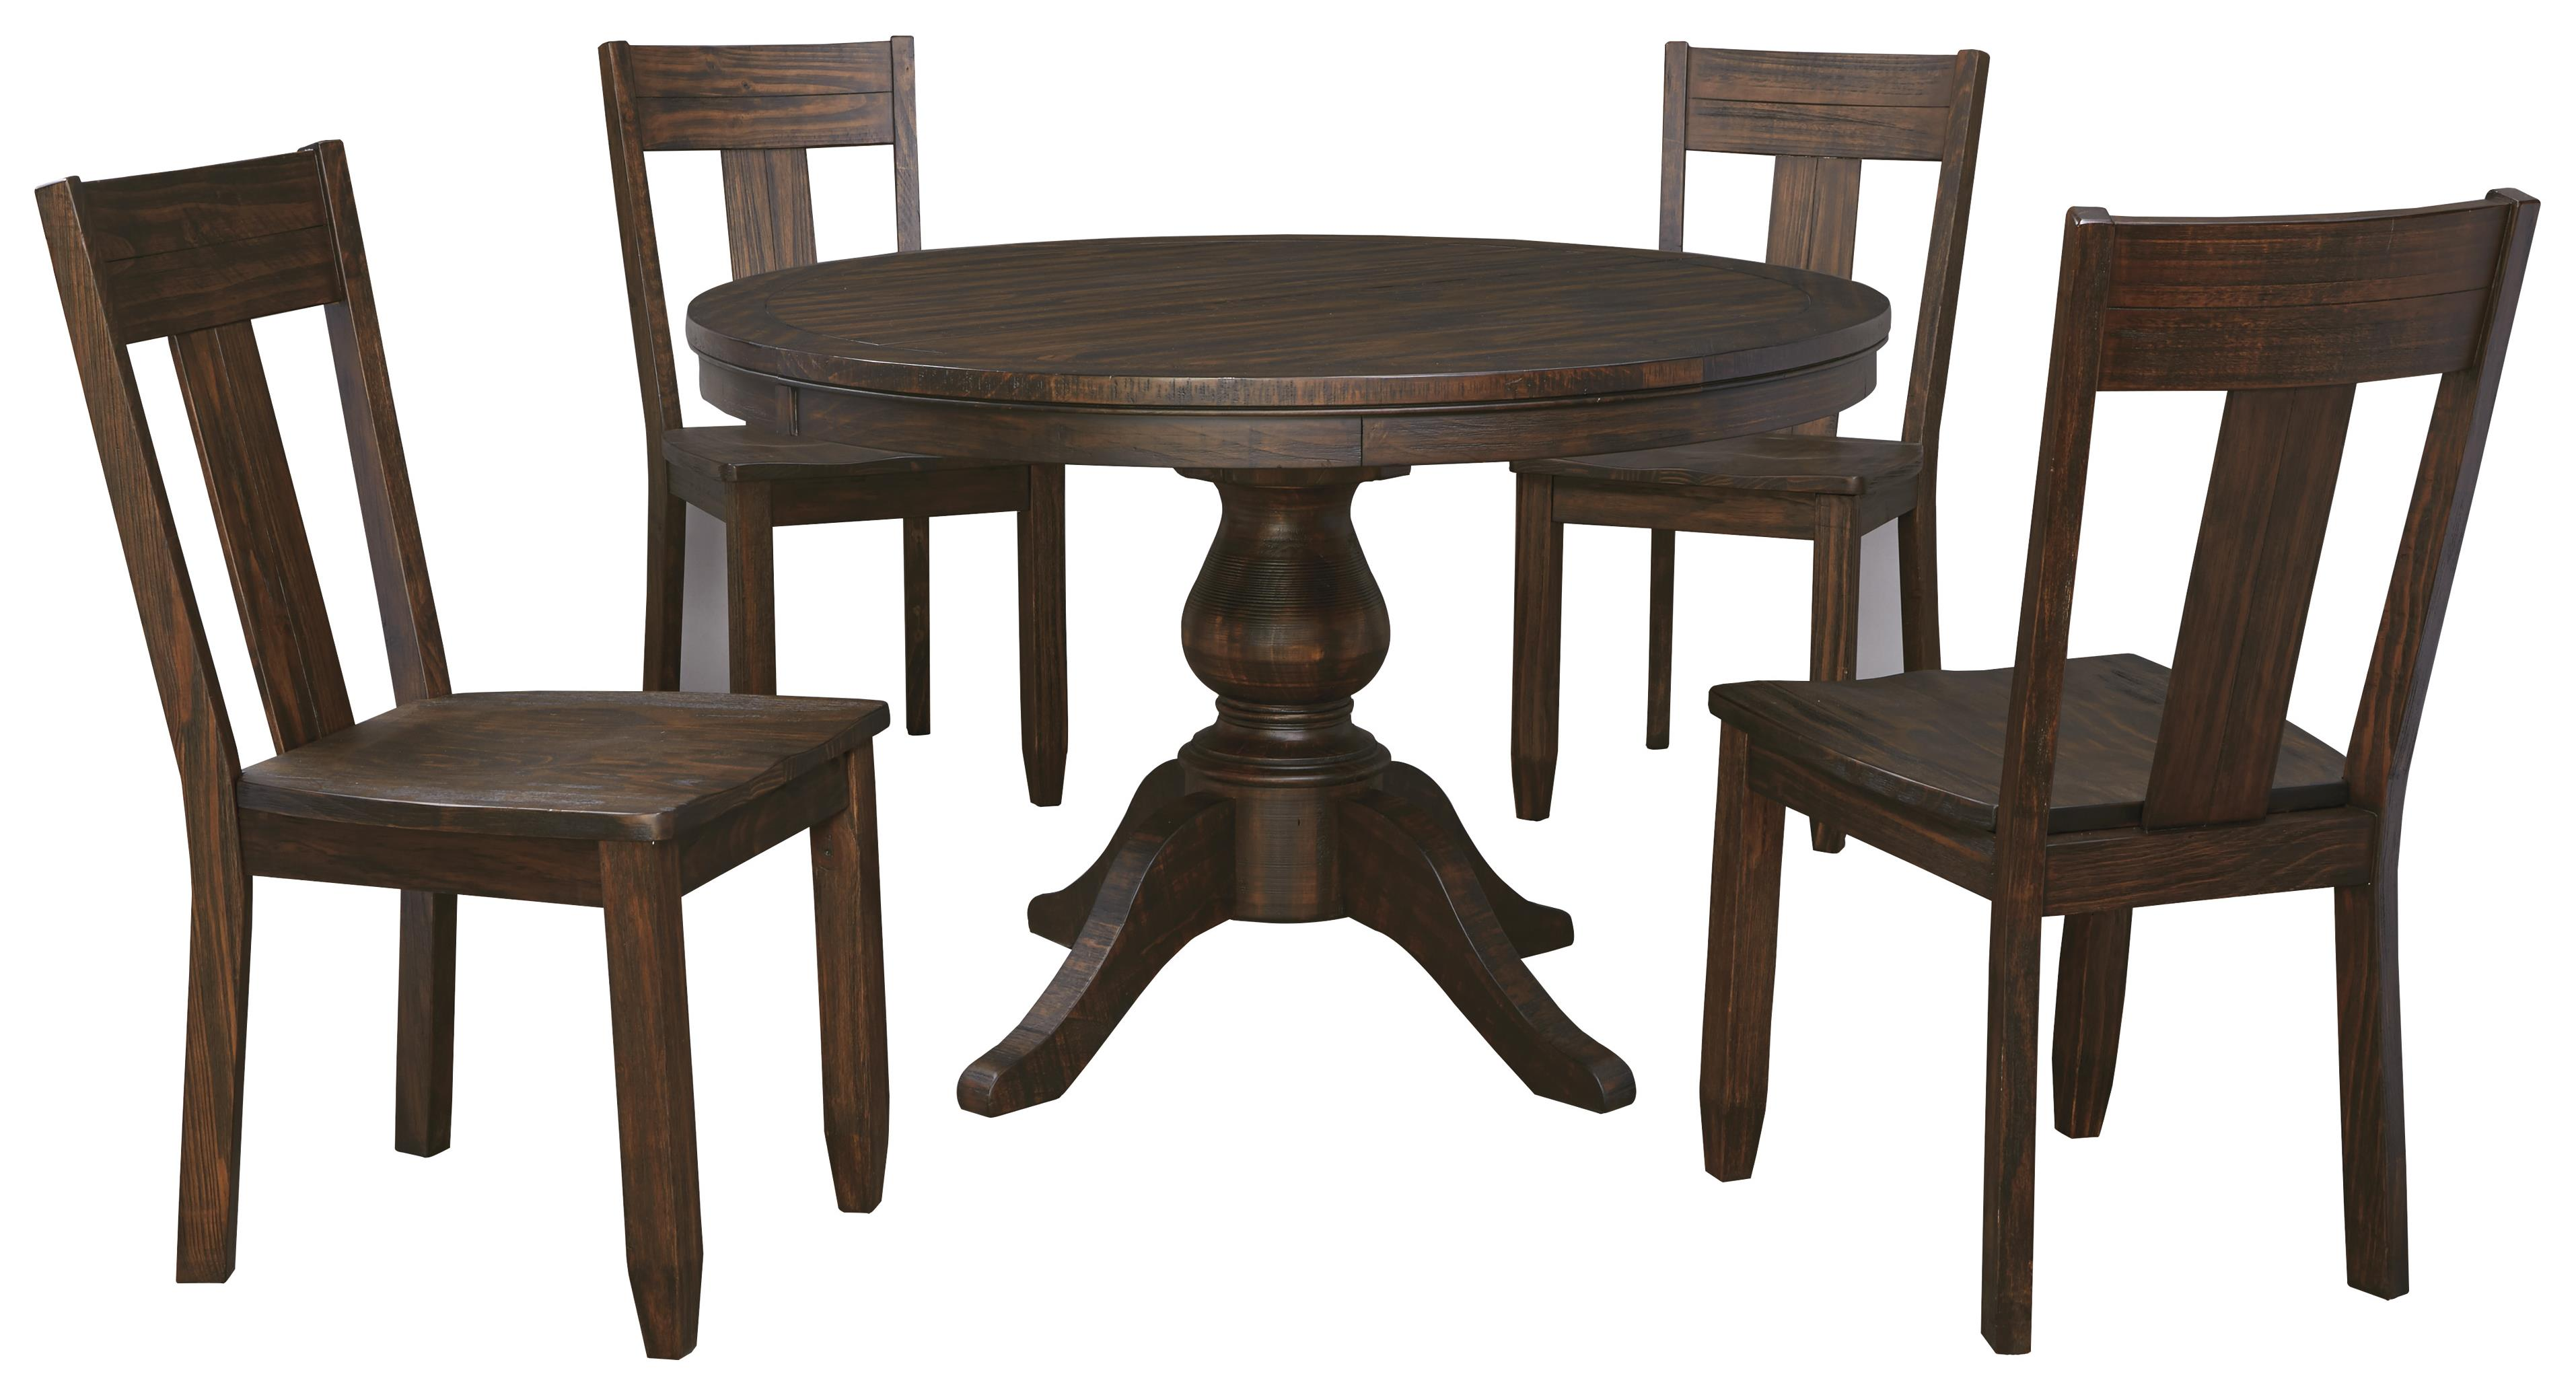 5 piece round dining table set with wood seat side chairs for Small dining table and bench set